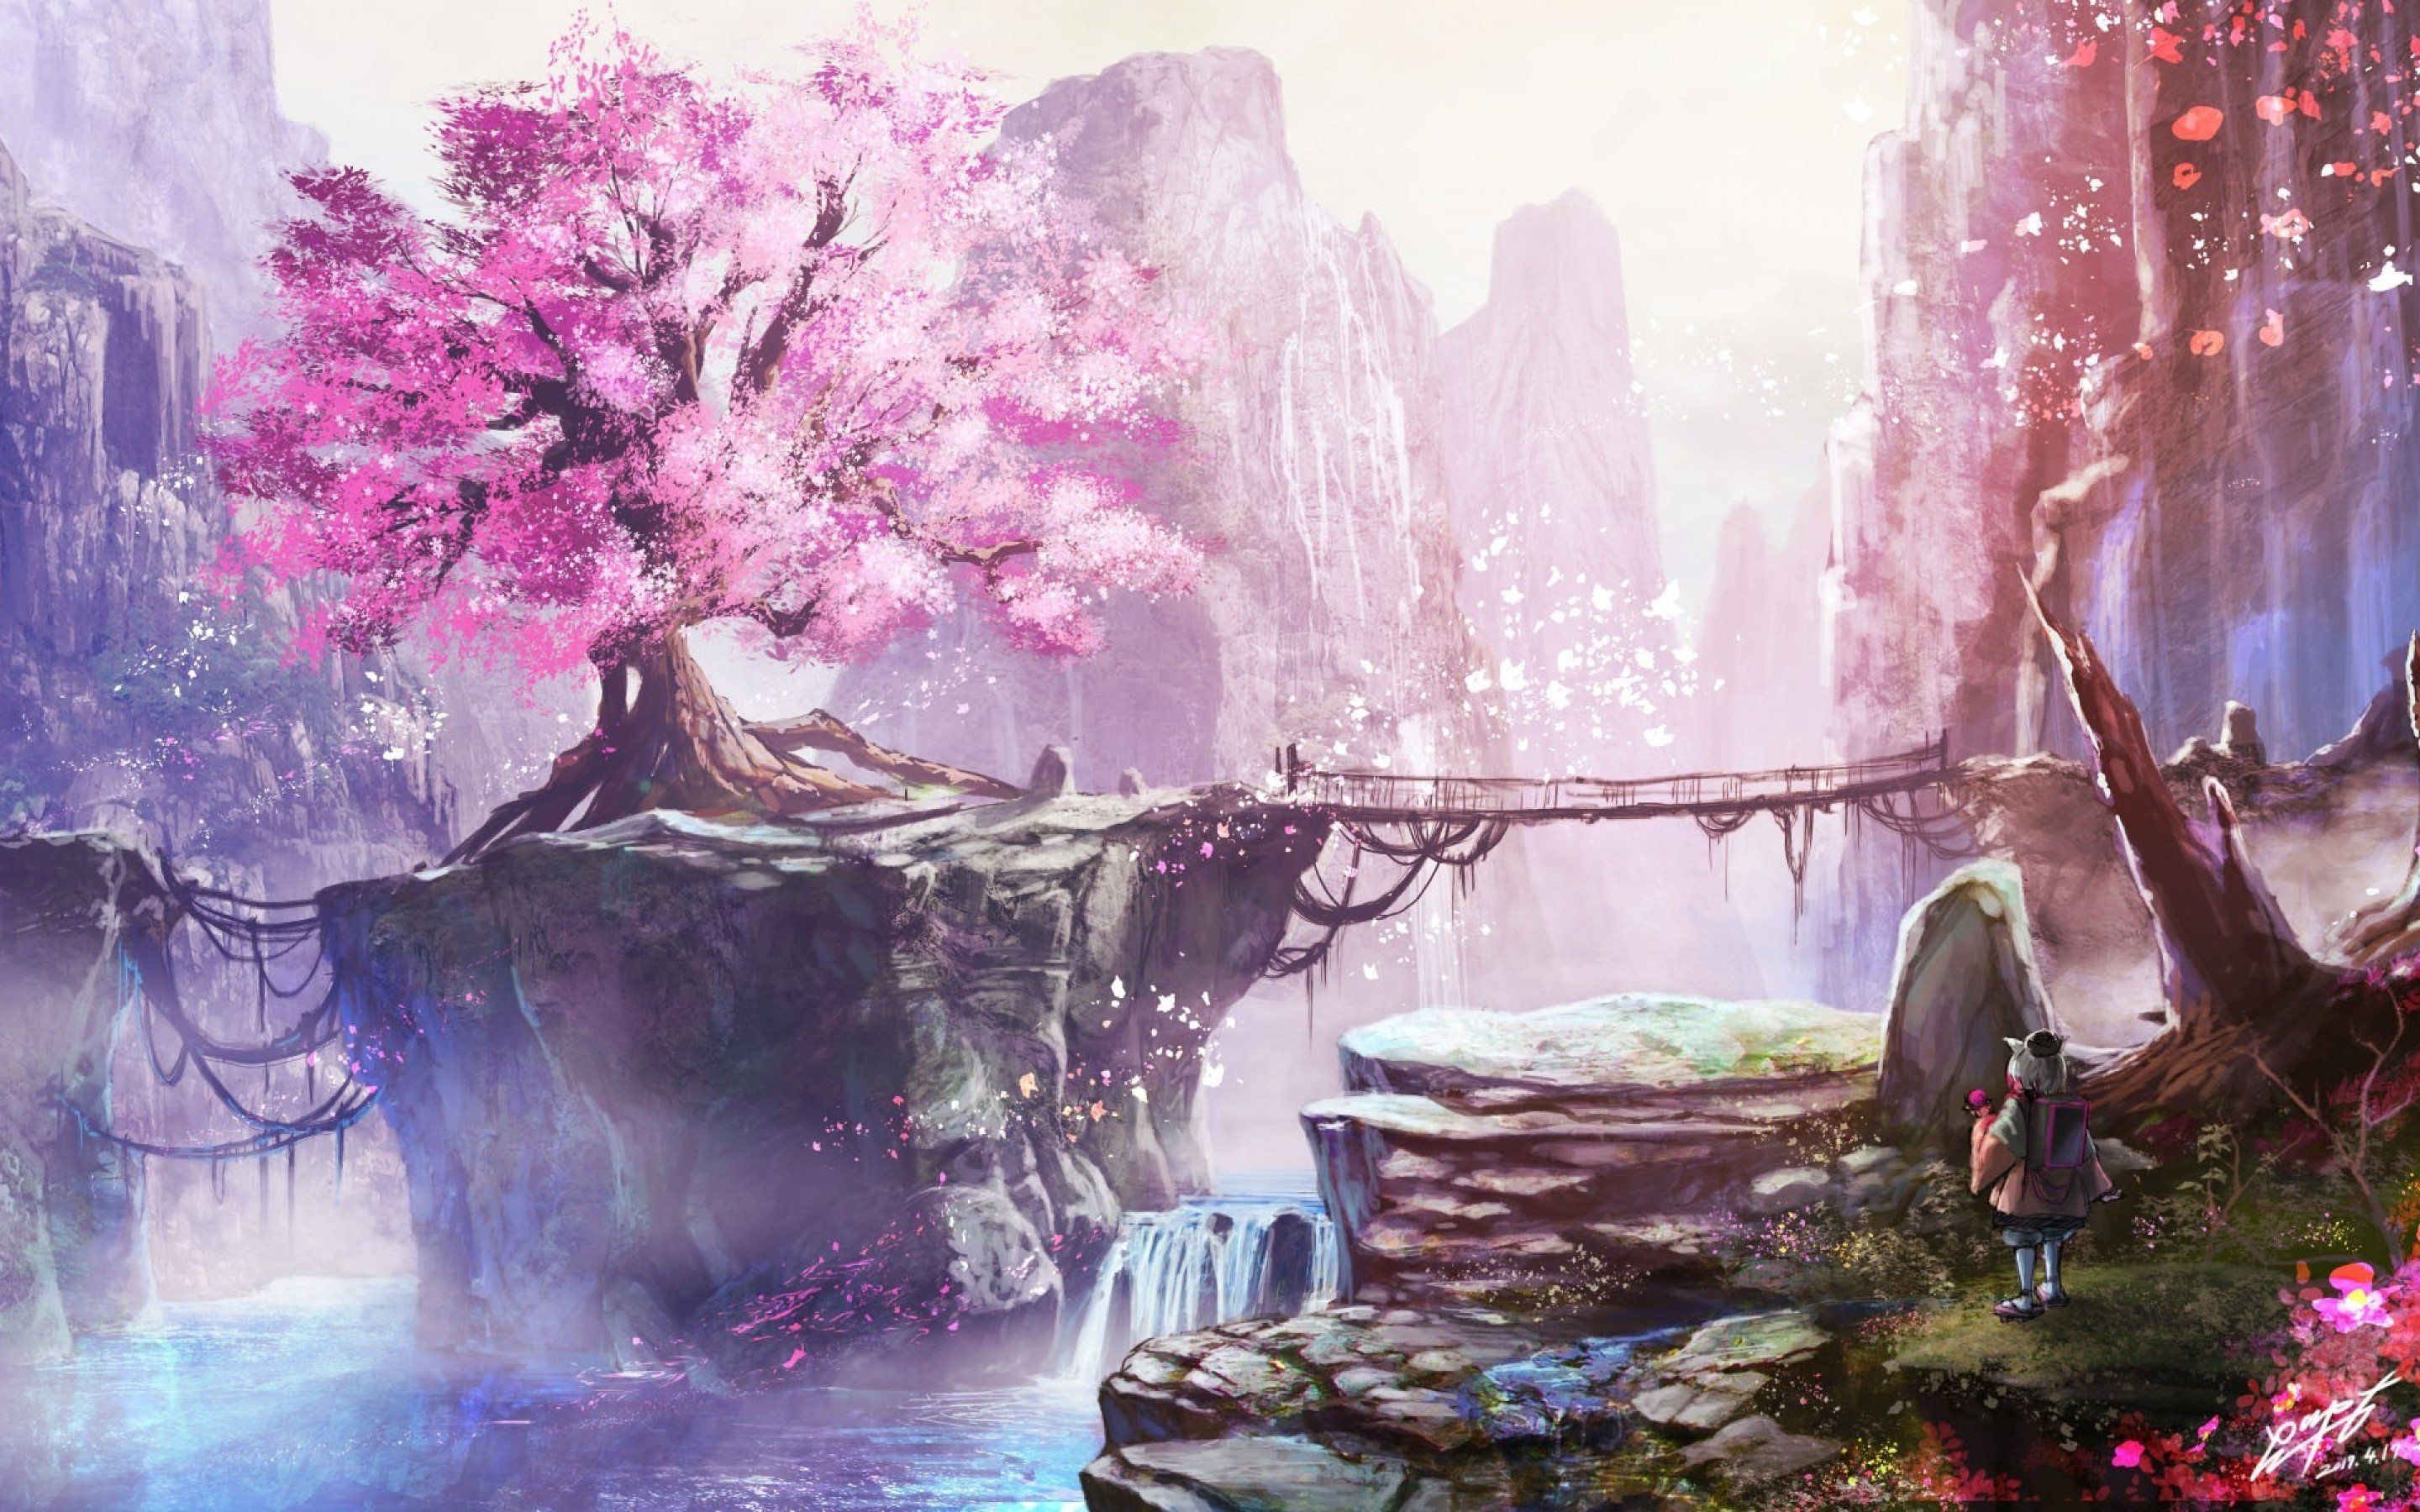 Anime Cherry Blossom Tree Hd Wallpaper